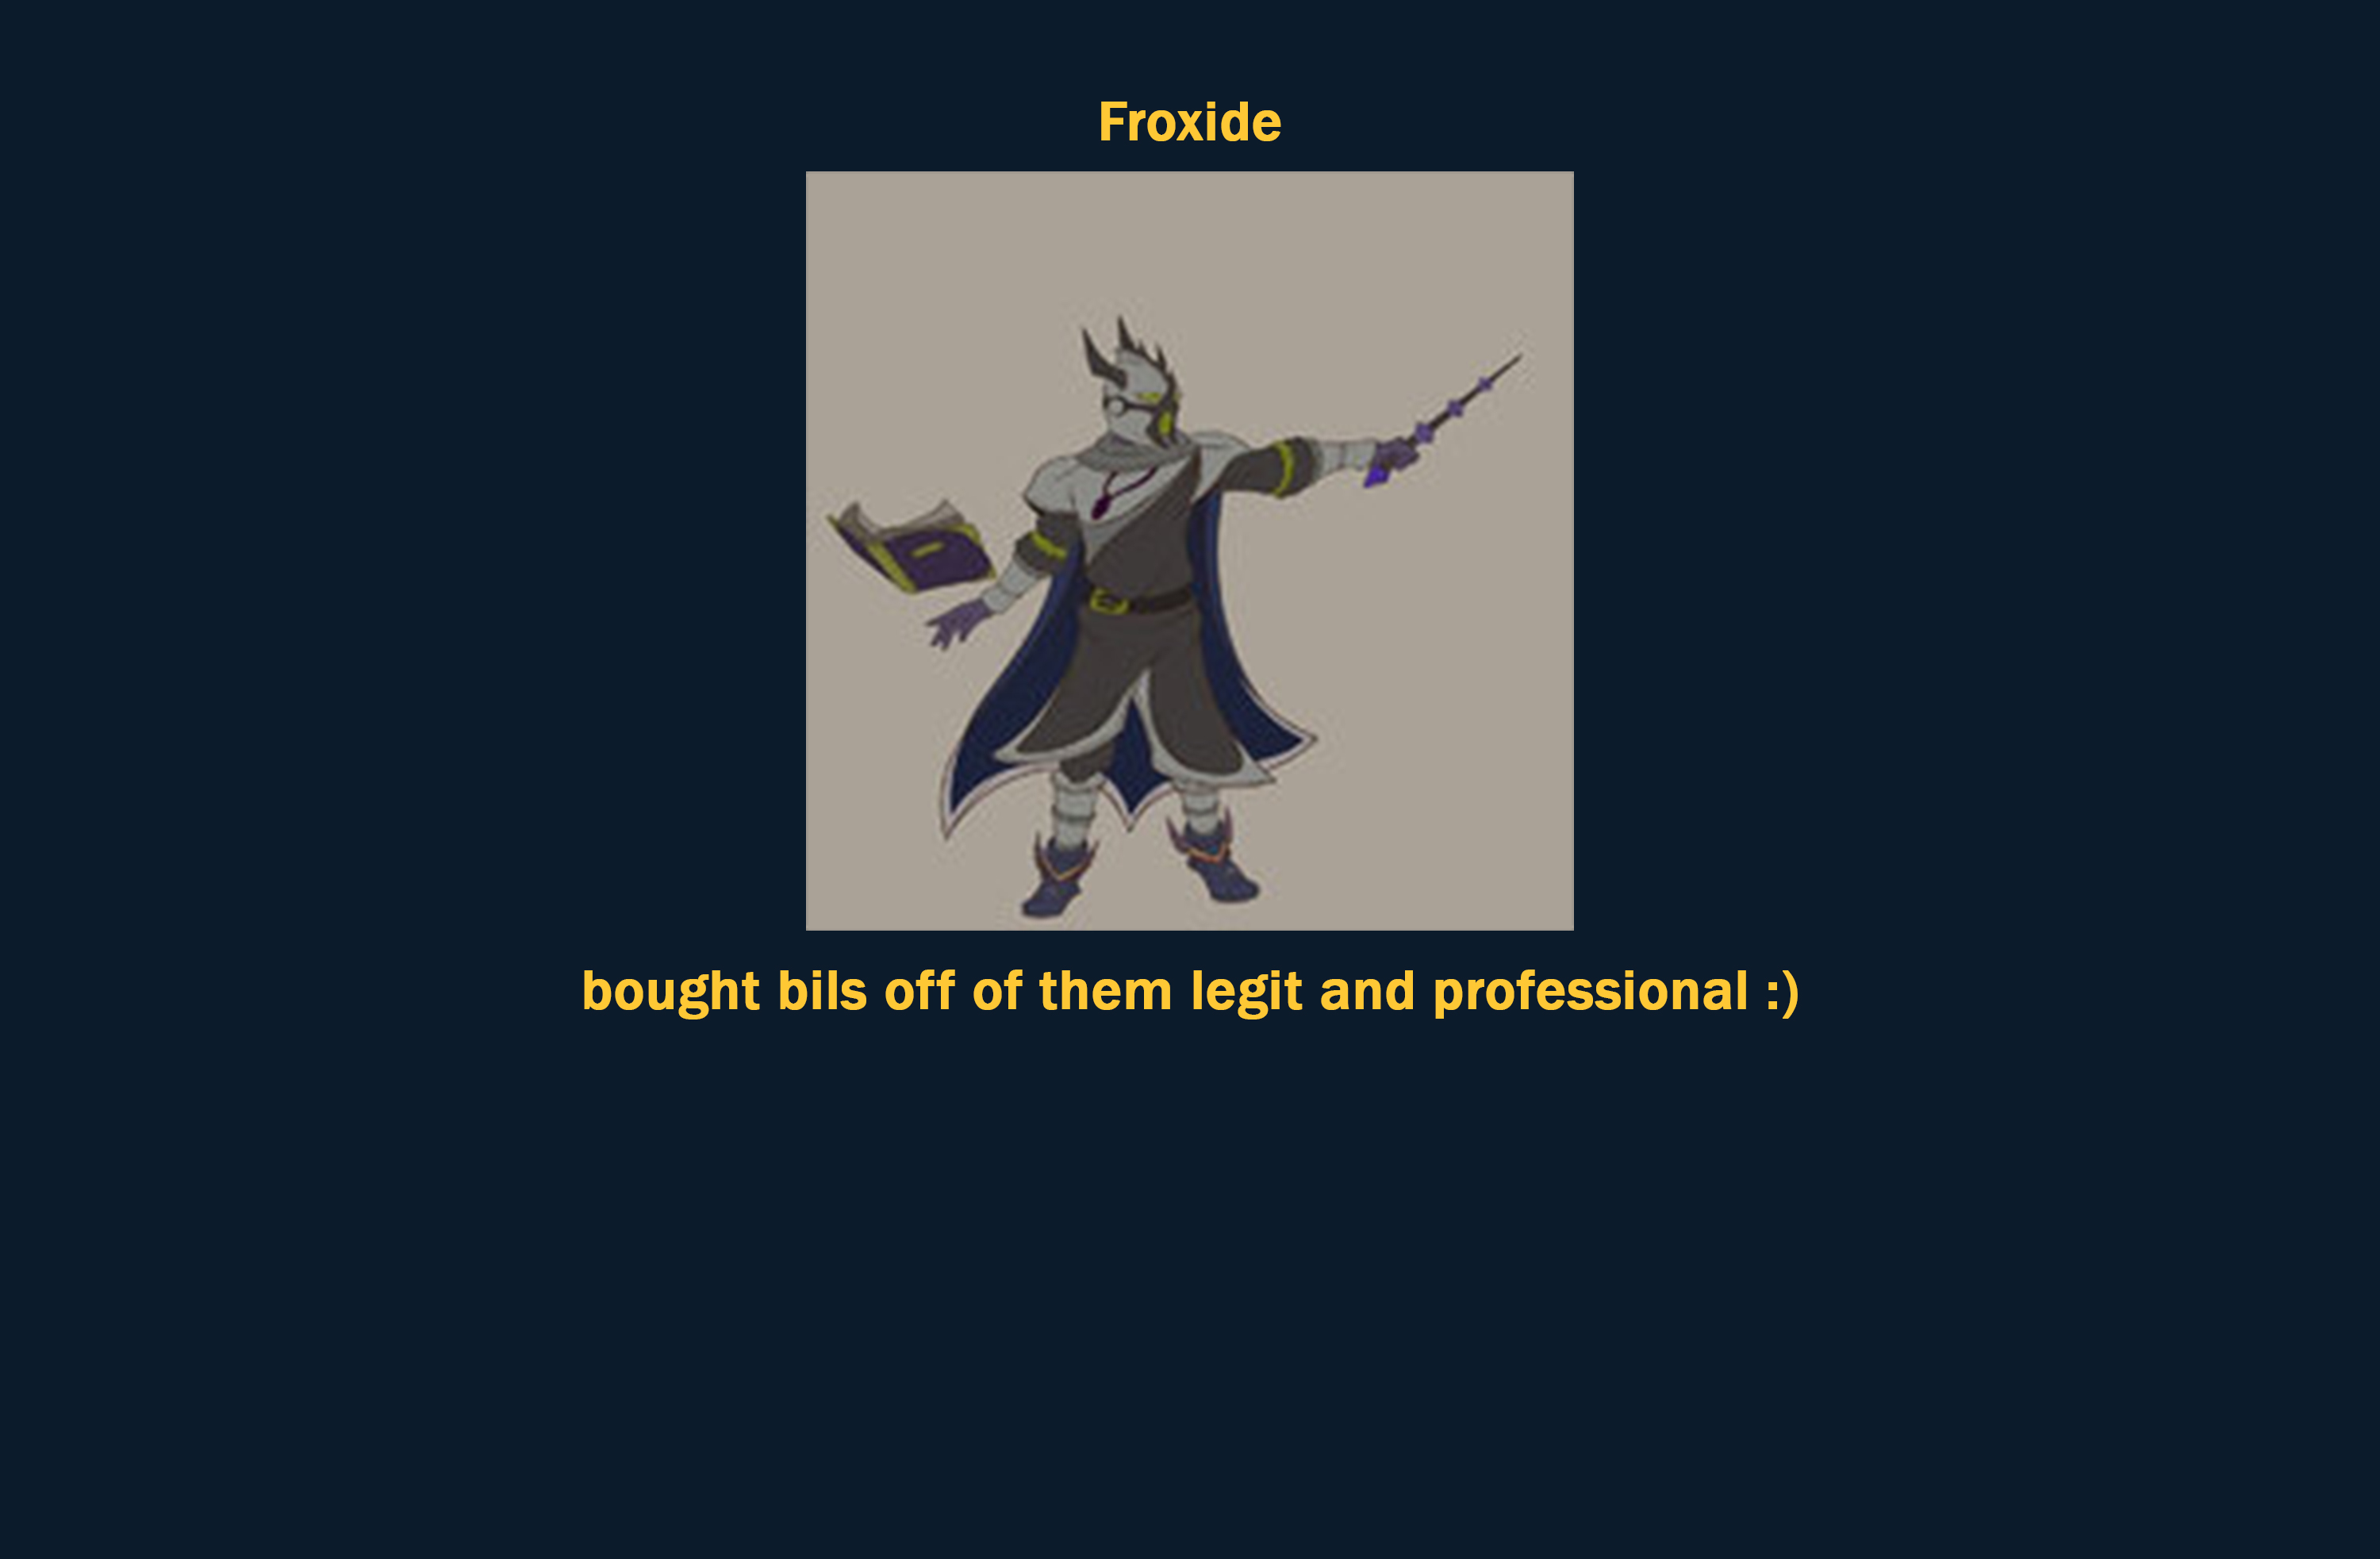 Froxide